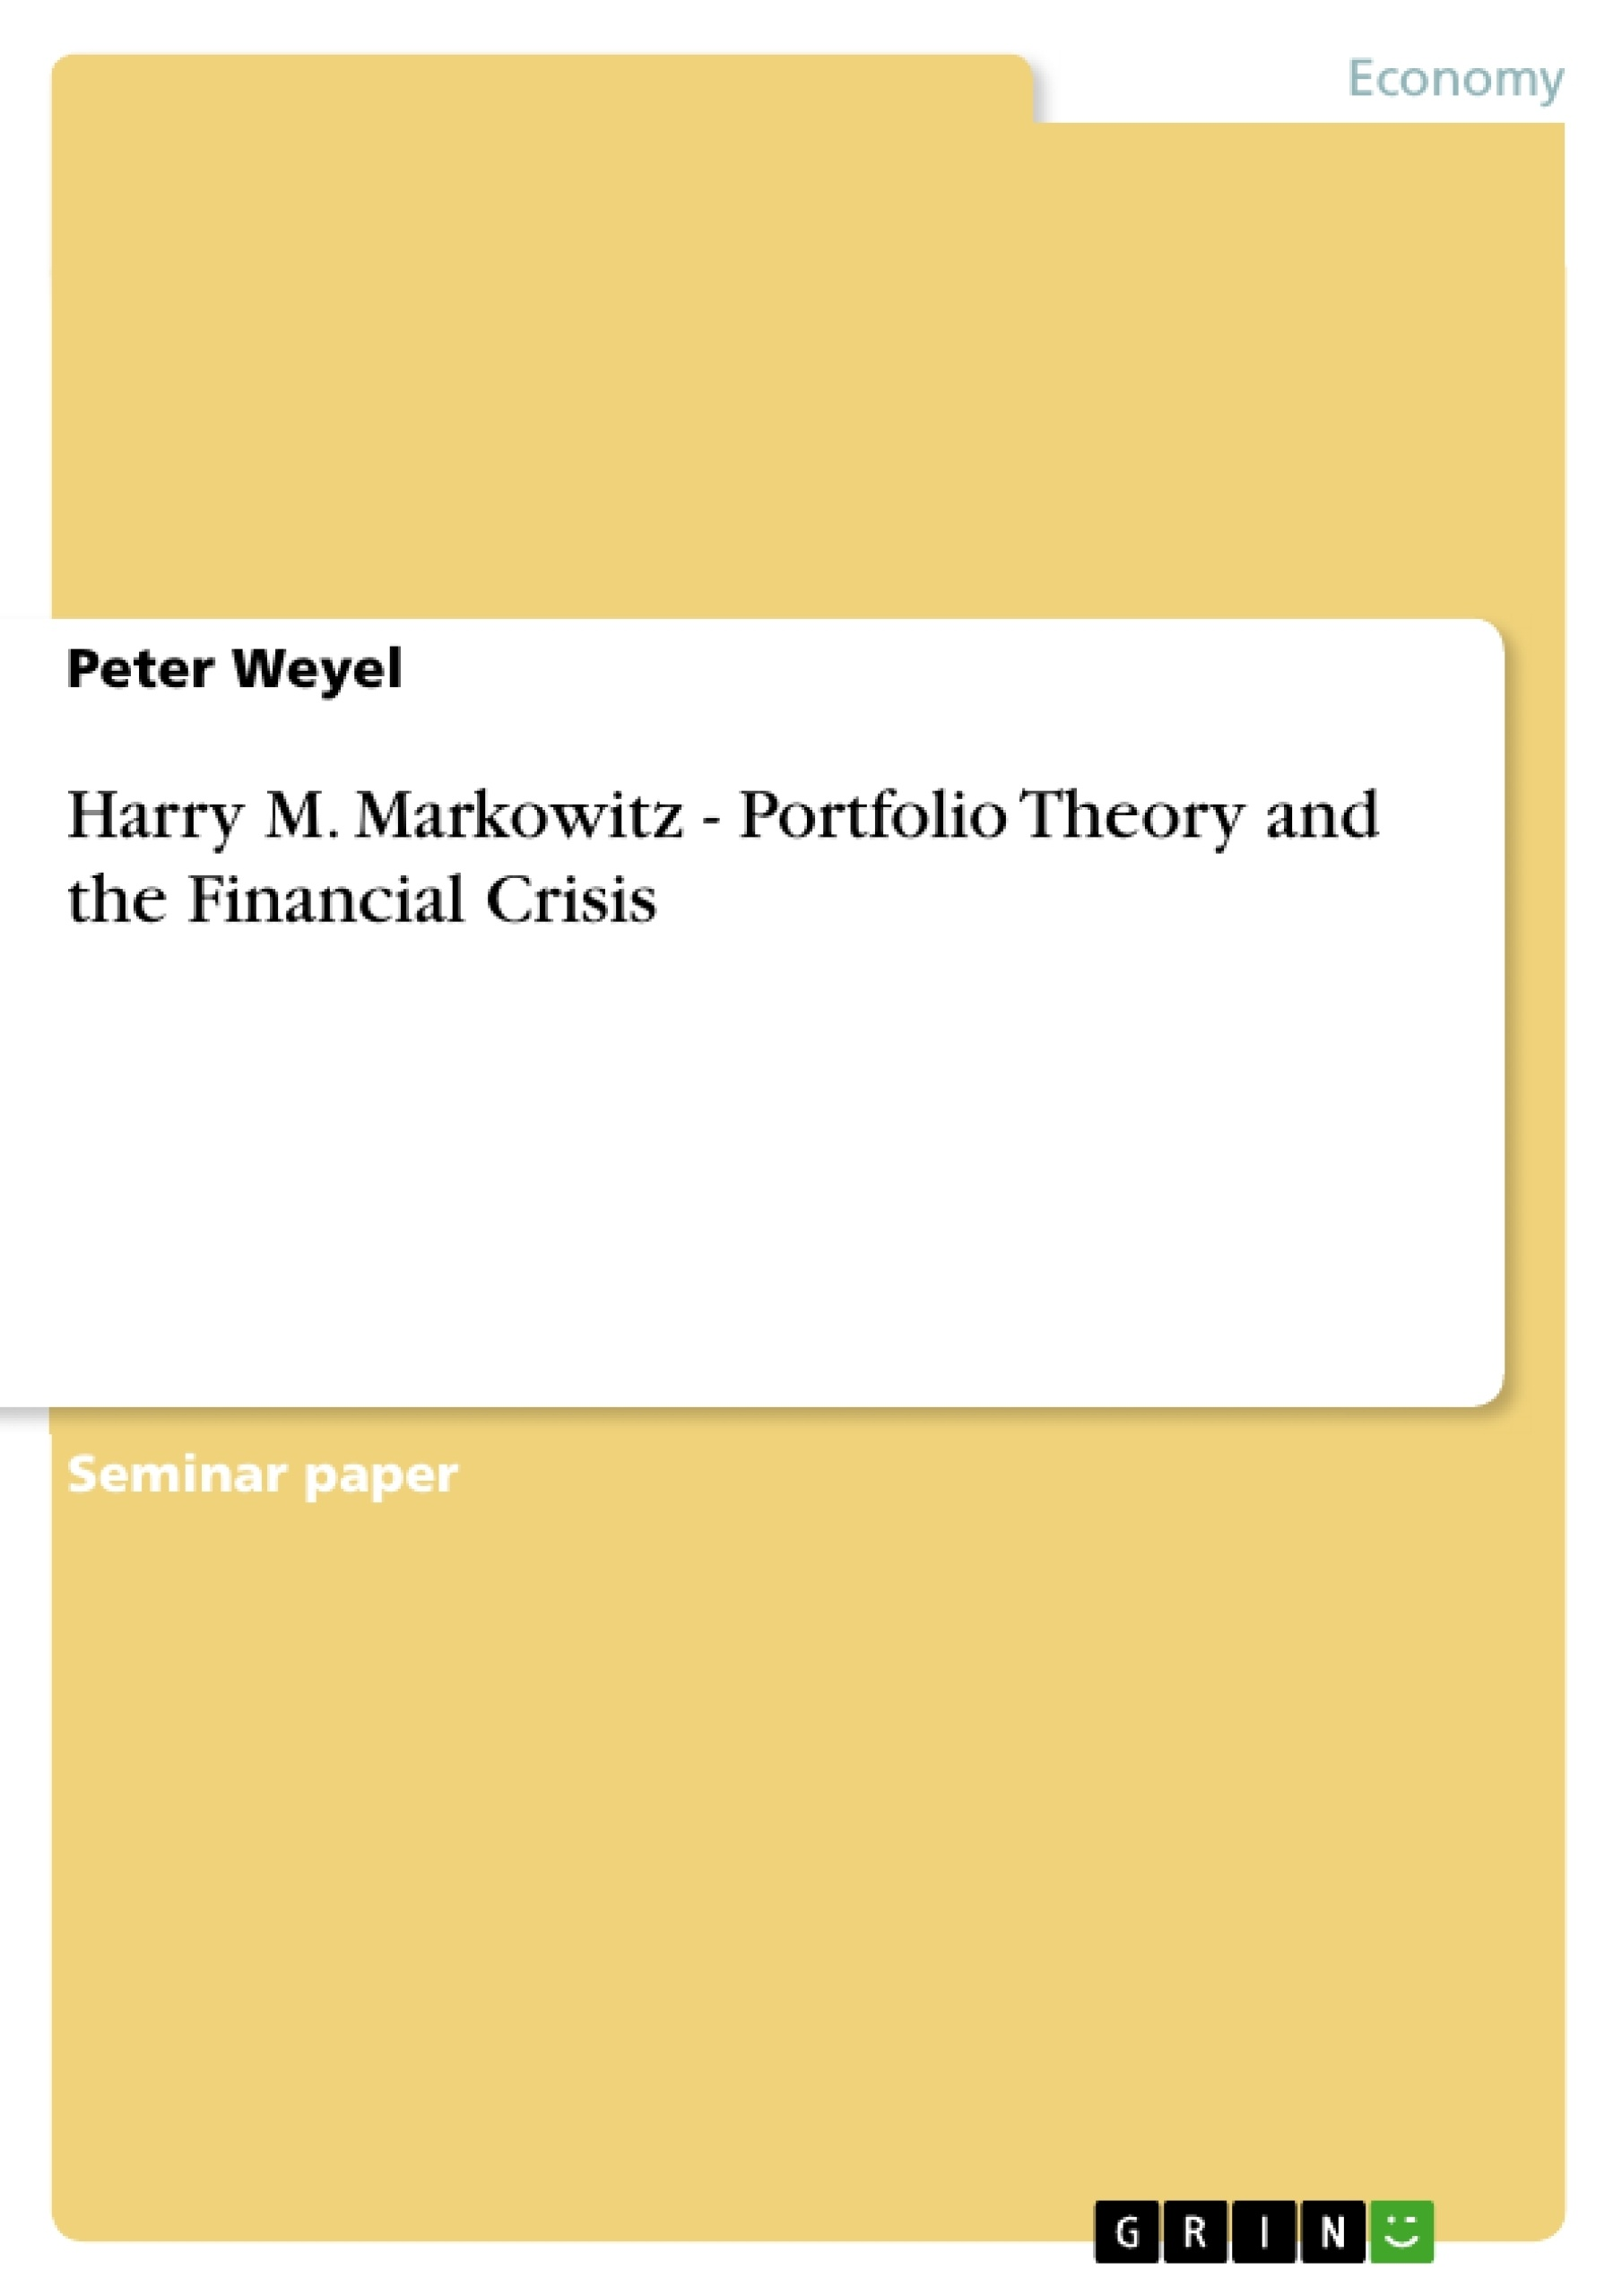 Title: Harry M. Markowitz - Portfolio Theory and the Financial Crisis